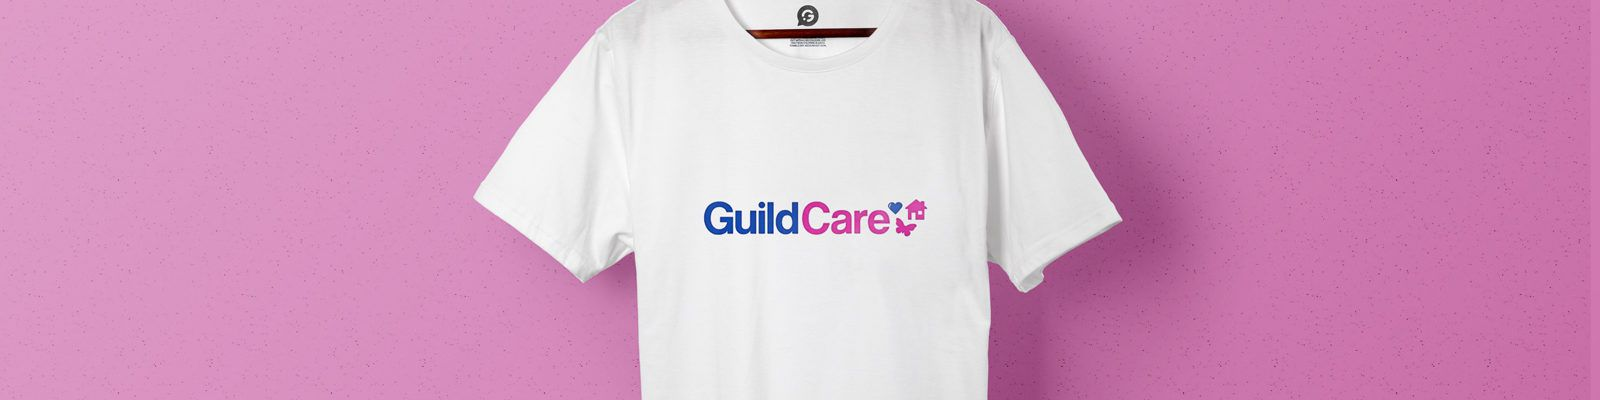 Guild Care Uses Printed T-Shirts to Promote Their Charity - Header Image